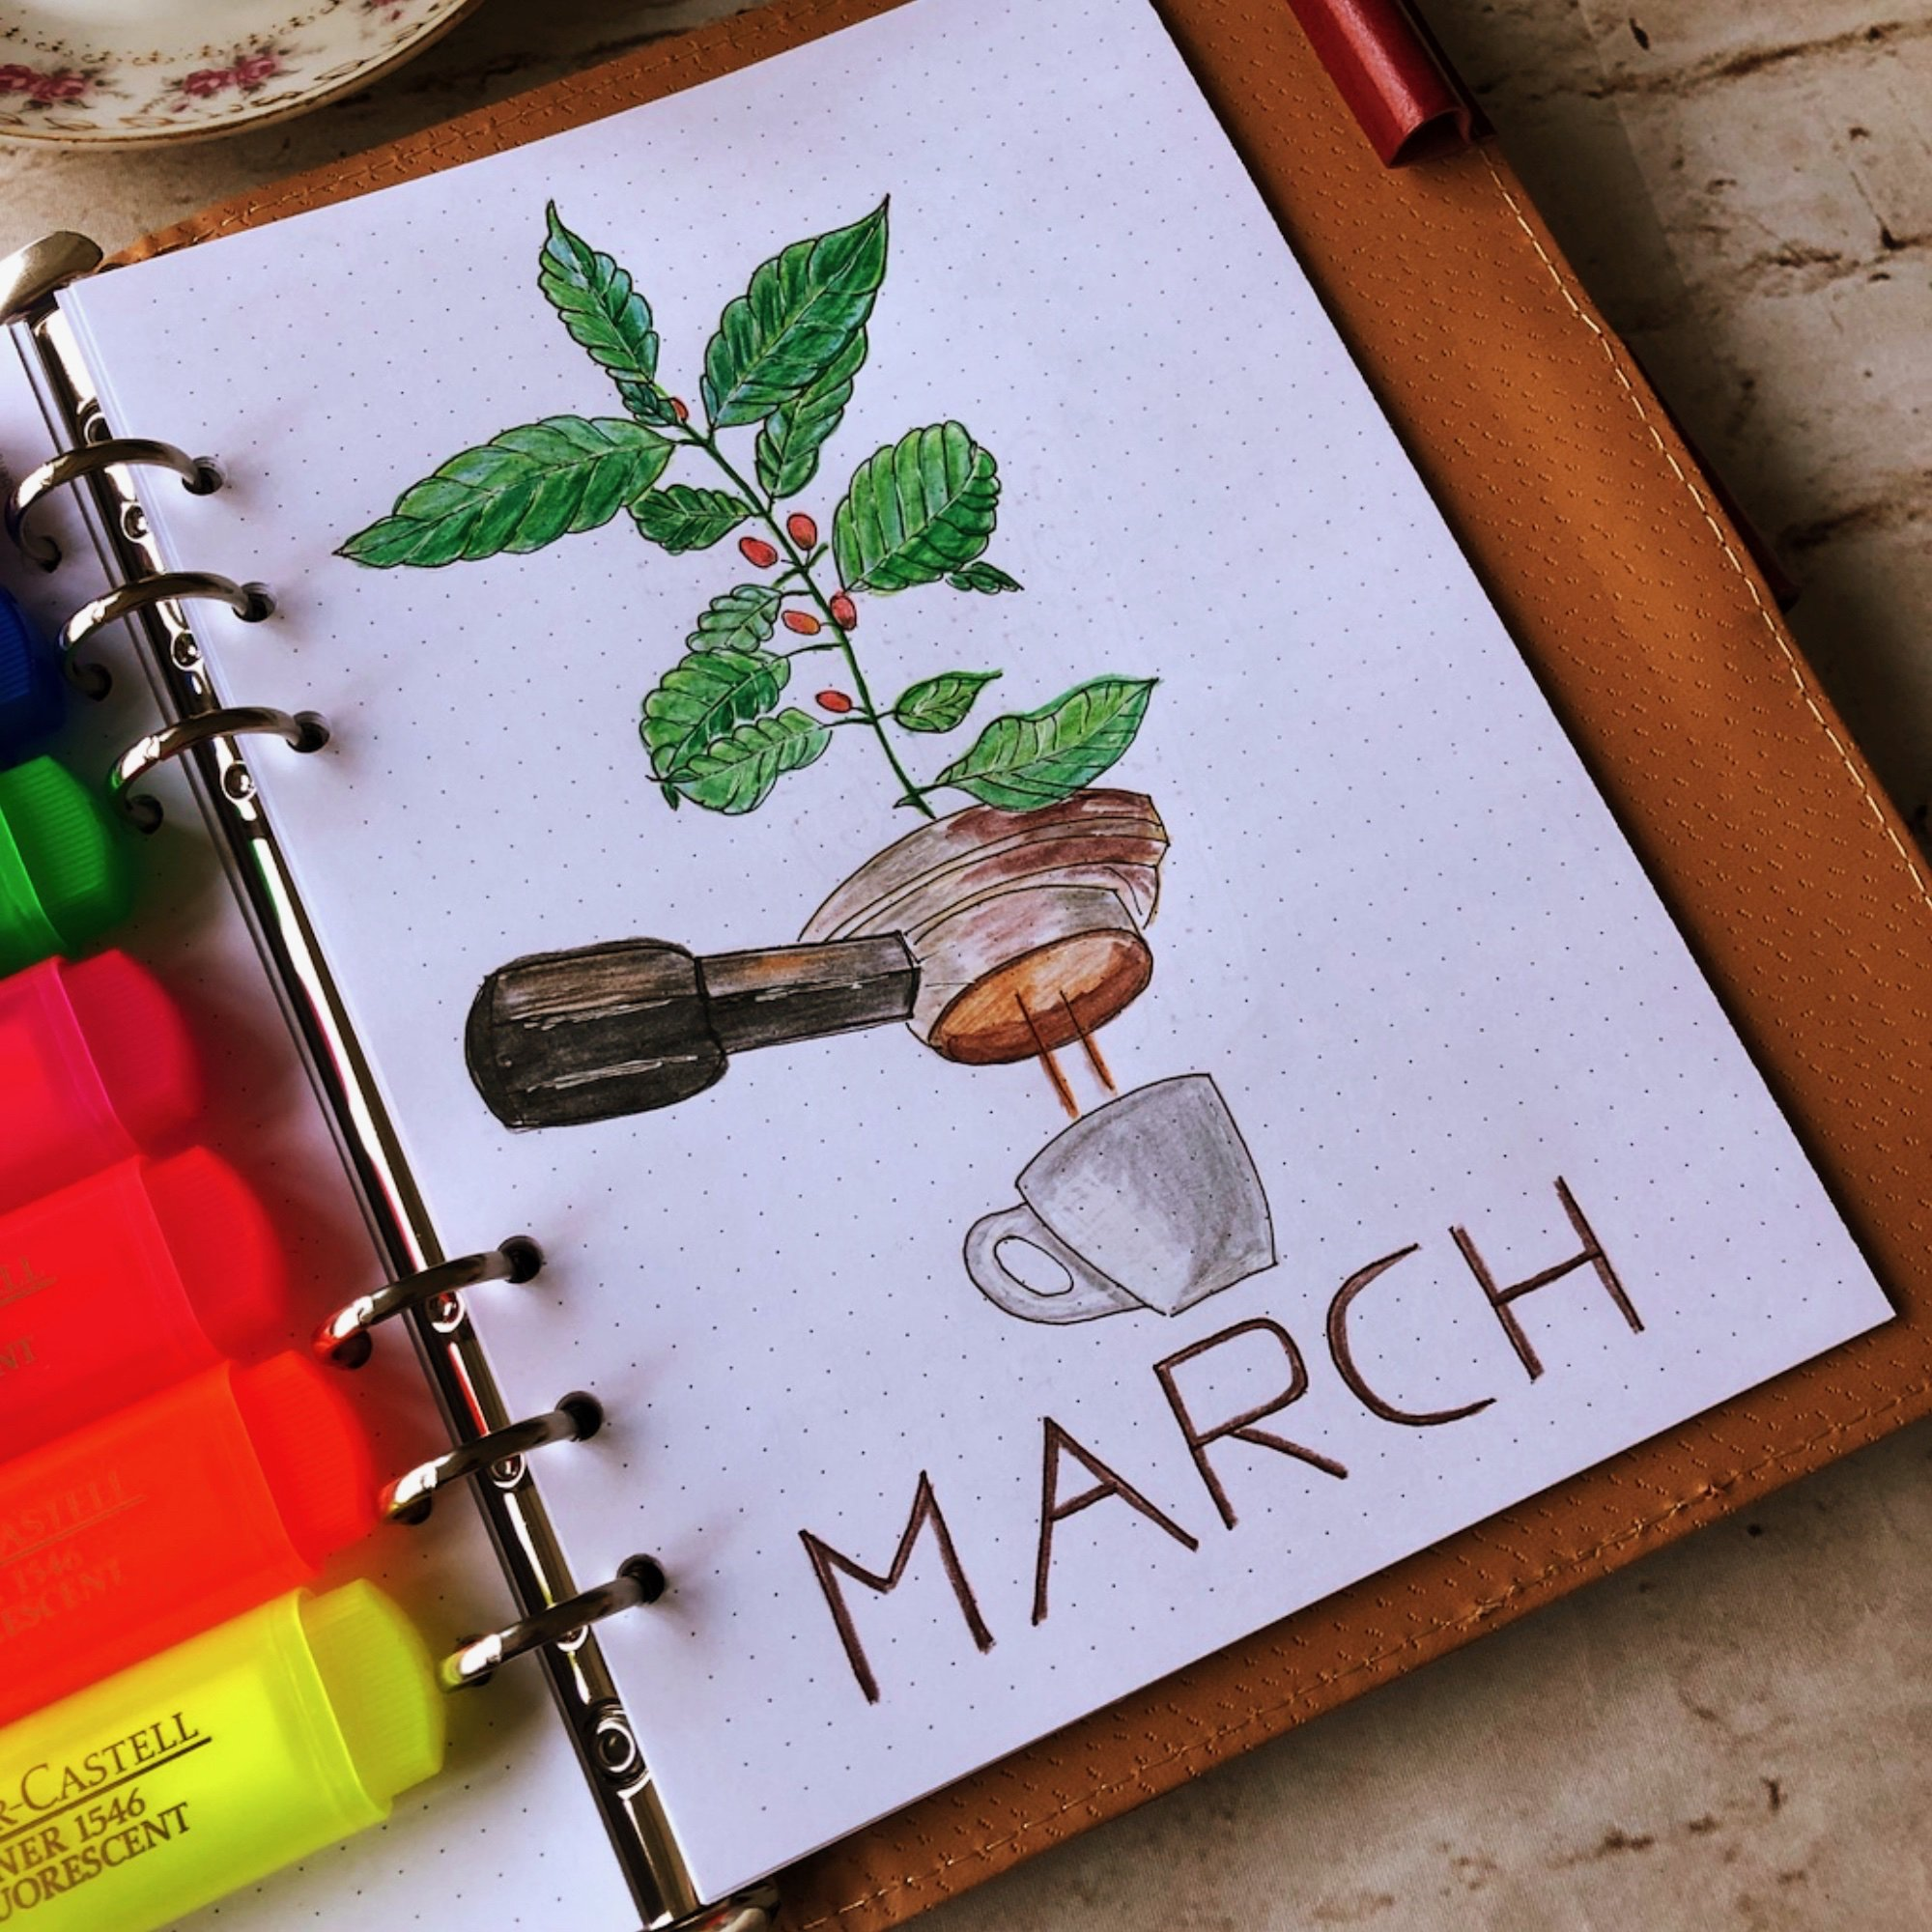 Creative journaling March 2019 - cover page - itstartswithacoffee.com #creativejournaling #monthly #monthlycover #March #coverpage